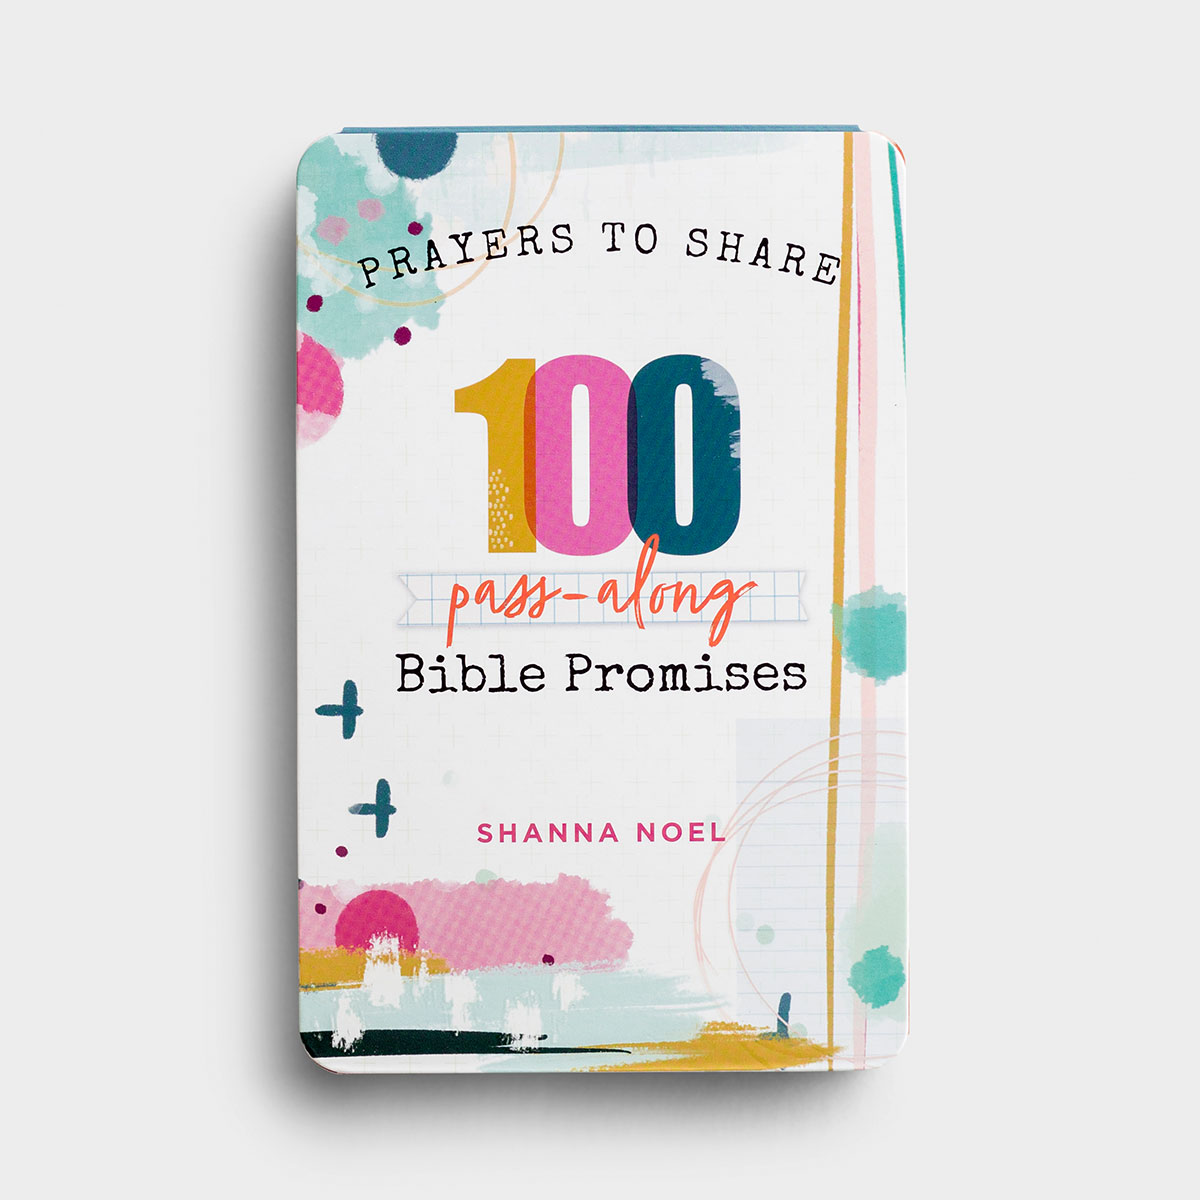 Prayers to Share - 100 Pass-Along Bible Promises